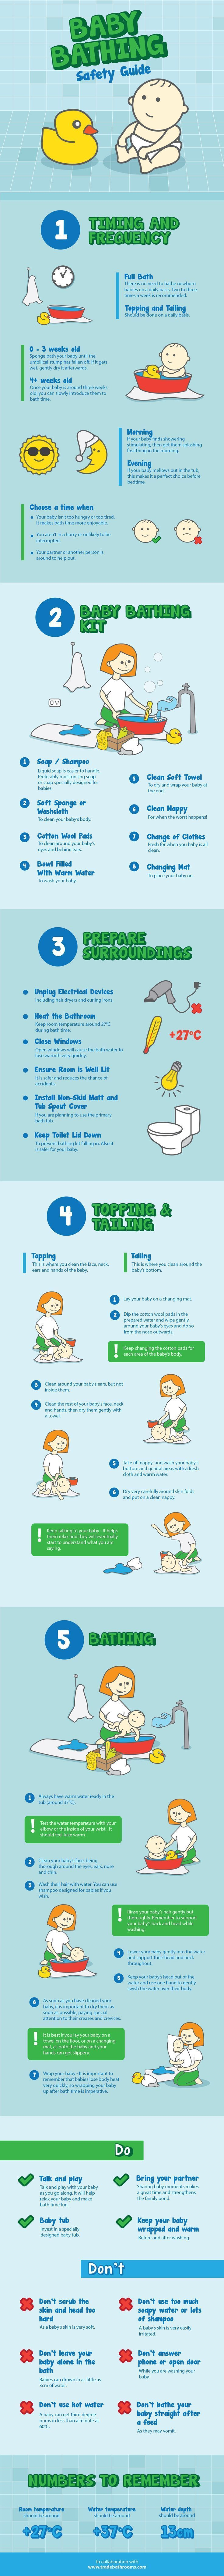 Infographic: Baby Bathing Safety Guide This infographic is a fantastic resource for all parents on baby bath time. There are some important things to bear in mind to make sure your baby is safe at all times. Trade Bathrooms has put together this guide. Gr